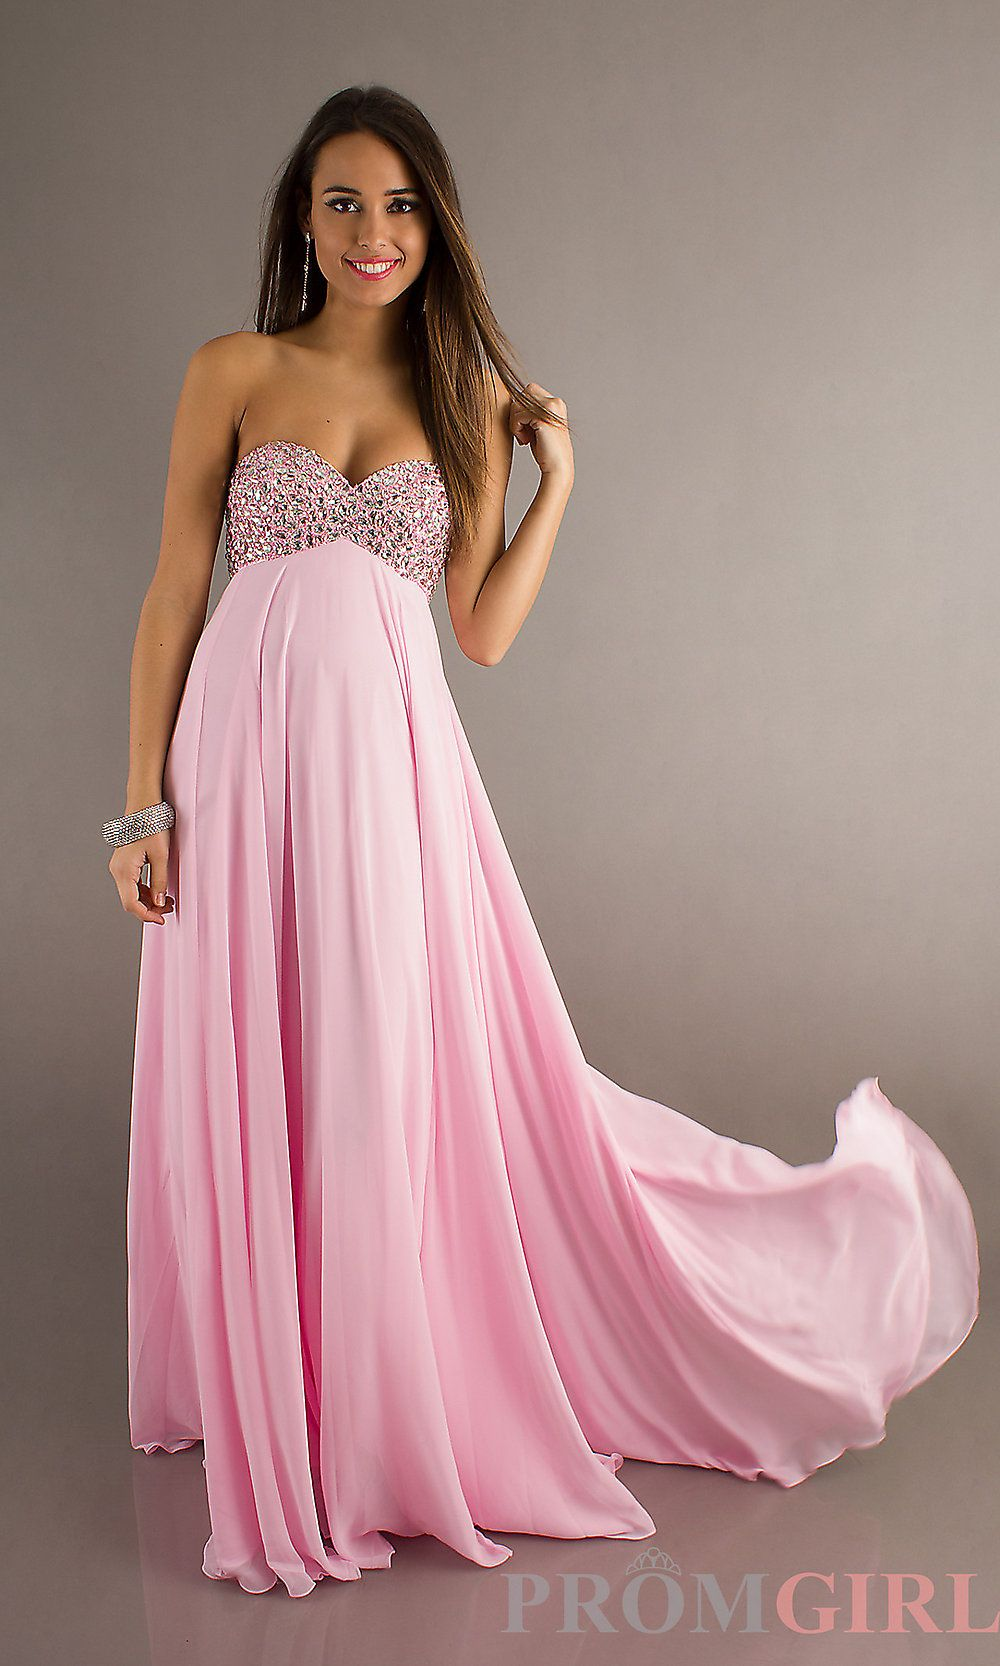 Strapless prom gown with train by alyce paris cotton candy gowns